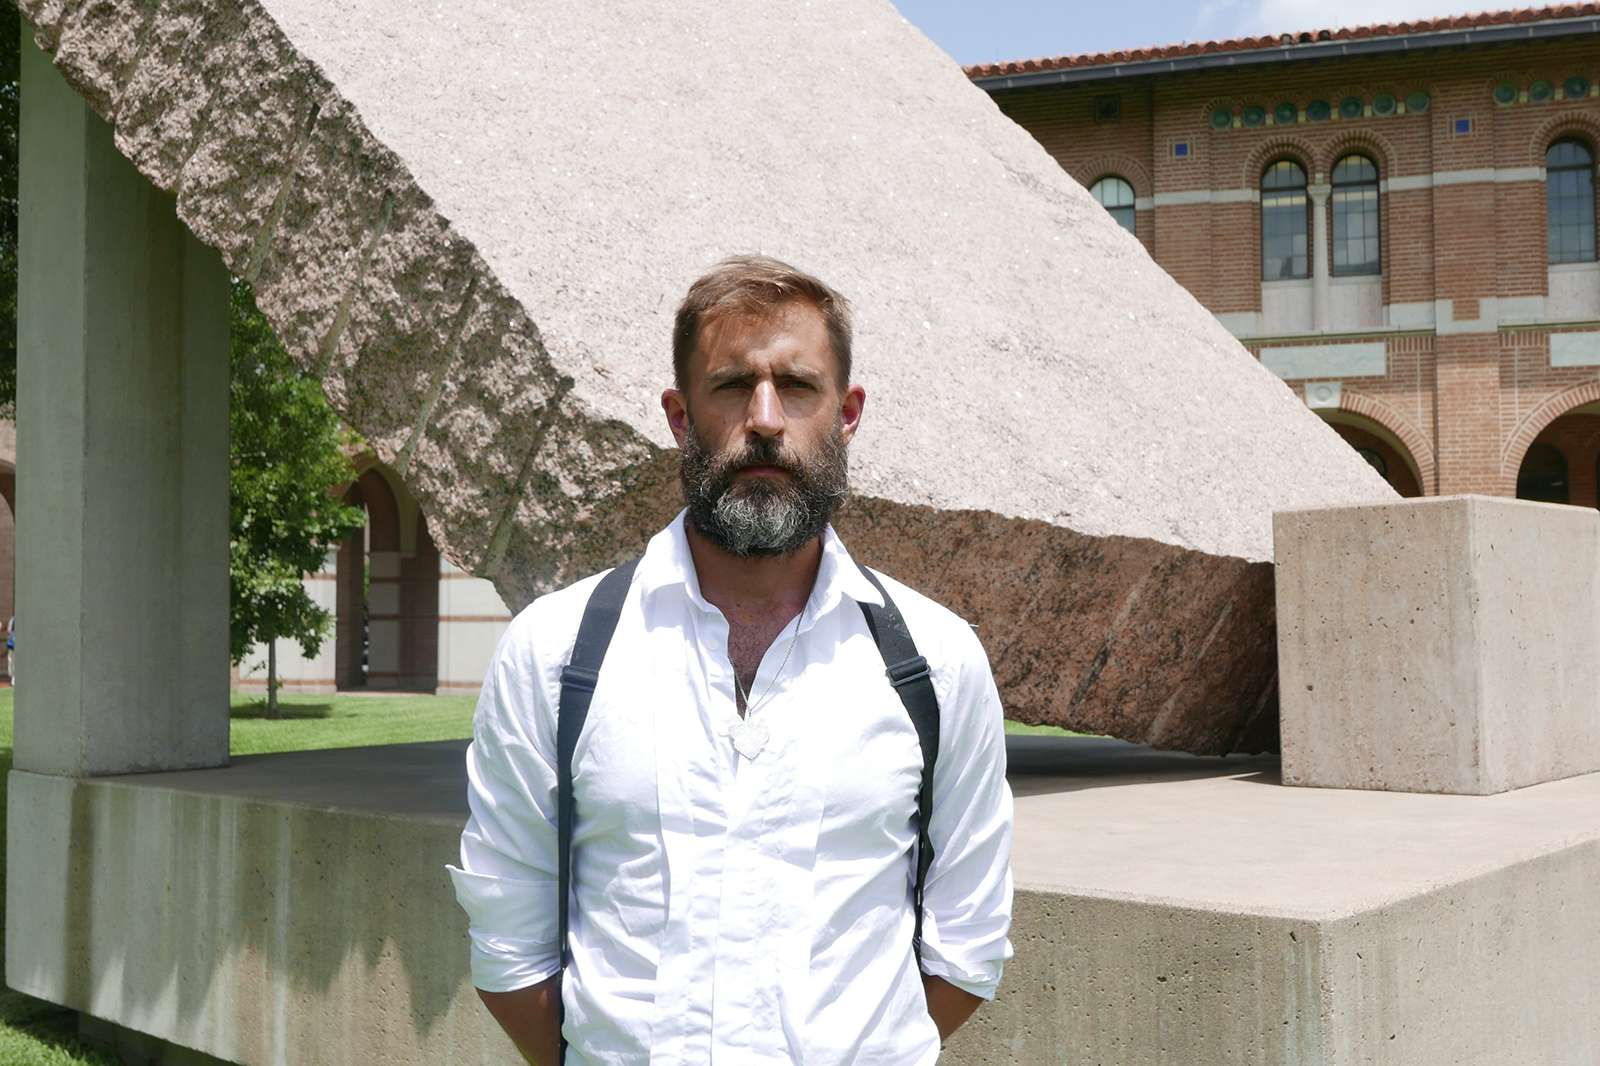 Artist Jarrod Beck with the 45° element of Michael Heizer's massive granite sculpture 45°, 90°, 180° (1984) at Rice University. Photo courtesy Rice Public Art.